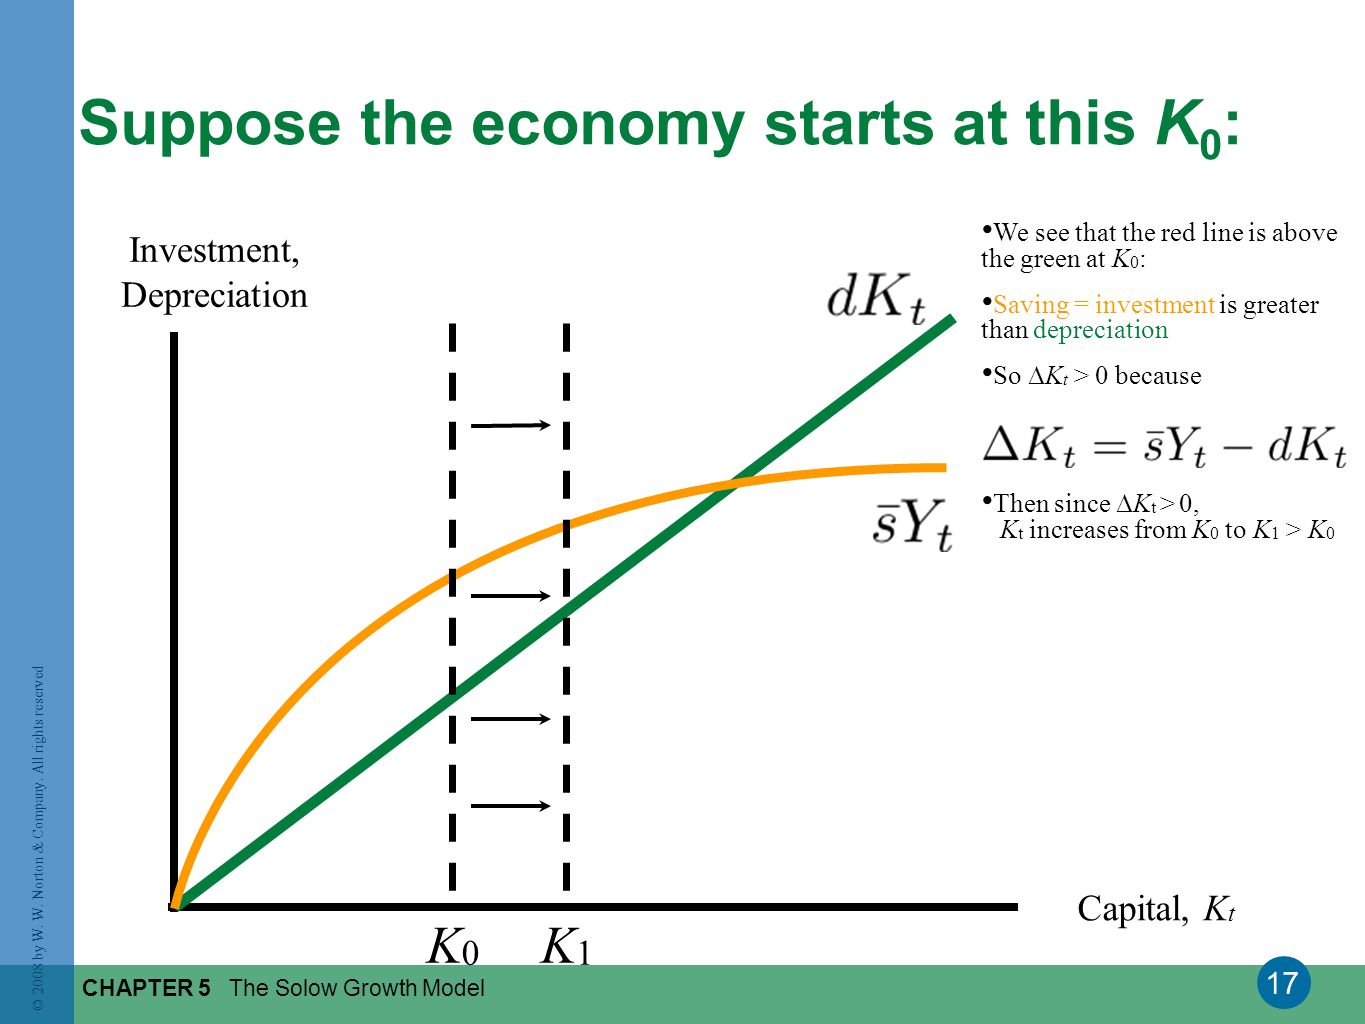 17 © 2008 by W. W. Norton & Company. All rights reserved CHAPTER 5 The Solow Growth Model Suppose the economy starts at this K 0 : Investment, Depreci